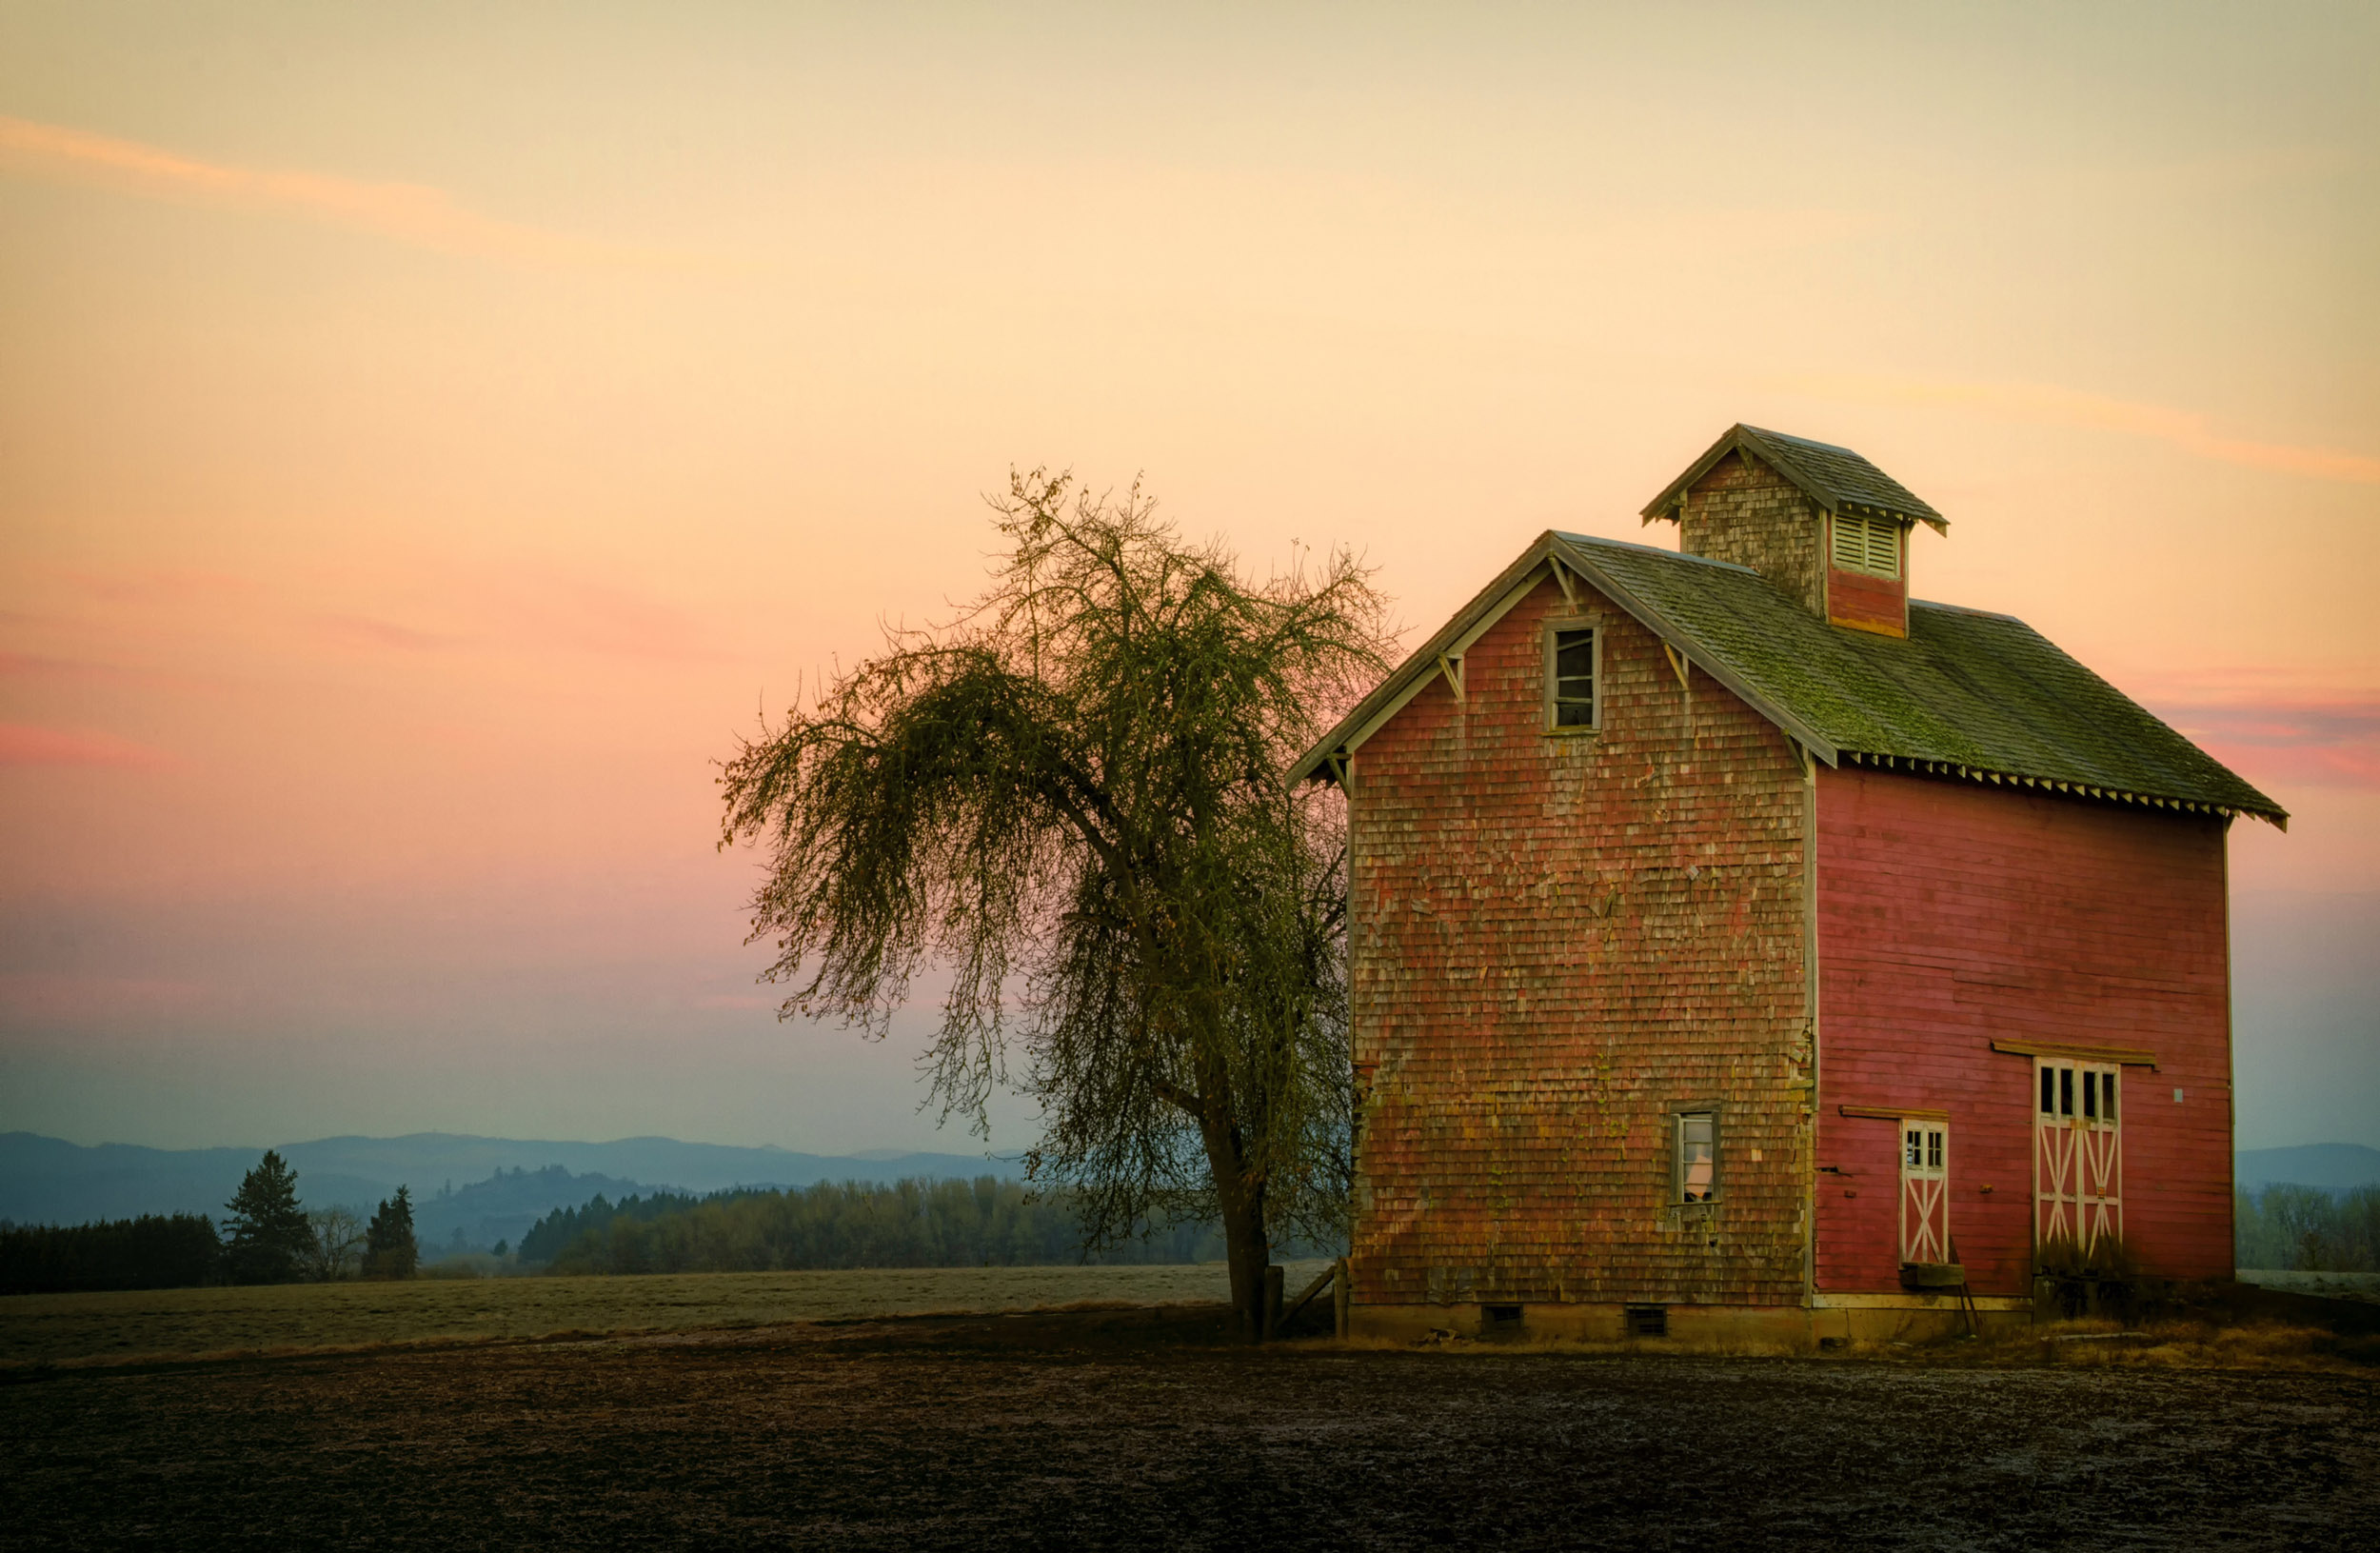 A solitary tall, brick barn by a tall tree in evening light, Oregon